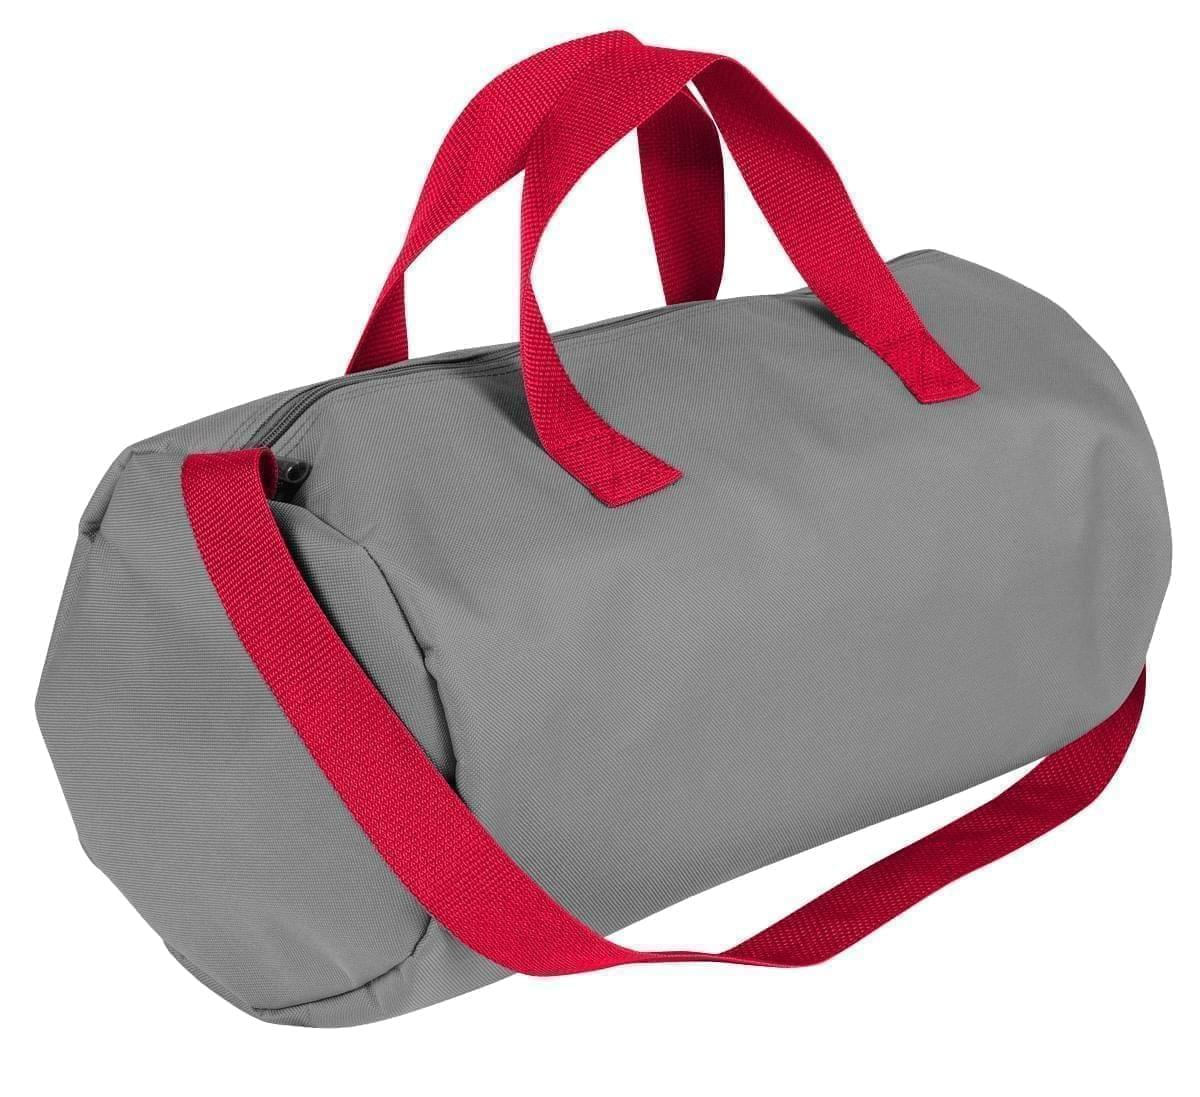 USA Made Nylon Poly Gym Roll Bags, Grey-Red, ROCX31AA12